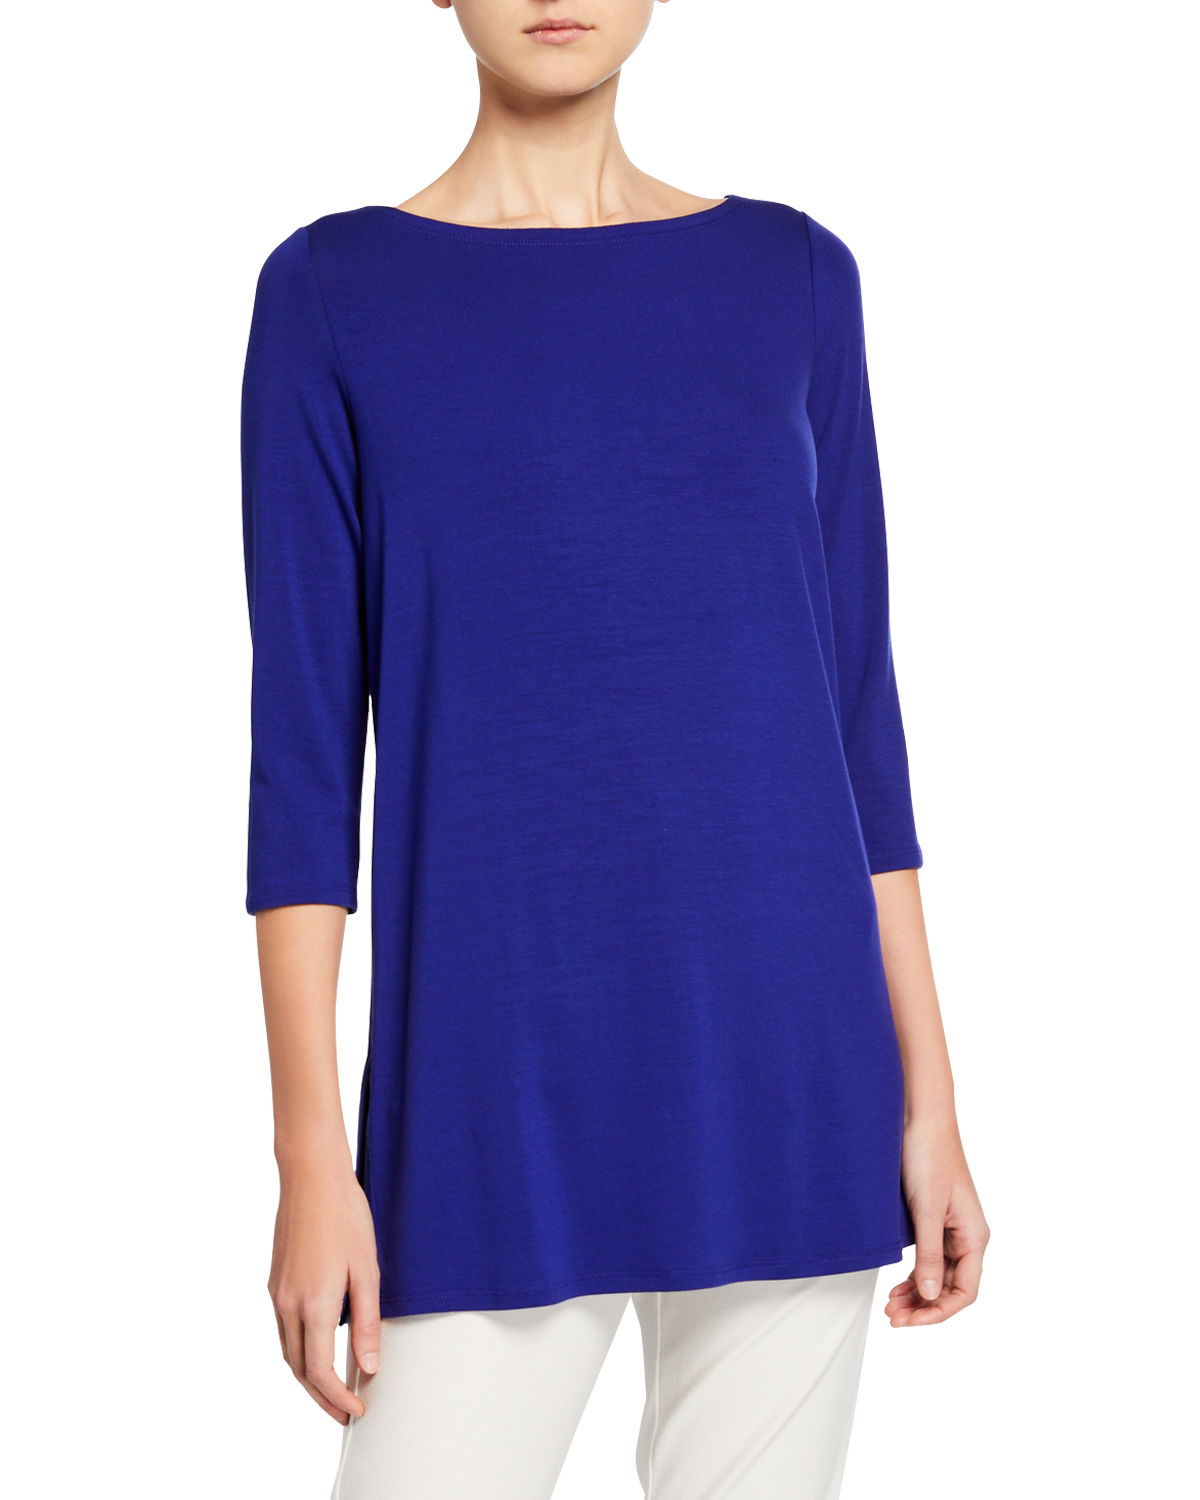 Eileen Fisher Tops PLUS SIZE BOAT-NECK 3/4-SLEEVE JERSEY TUNIC